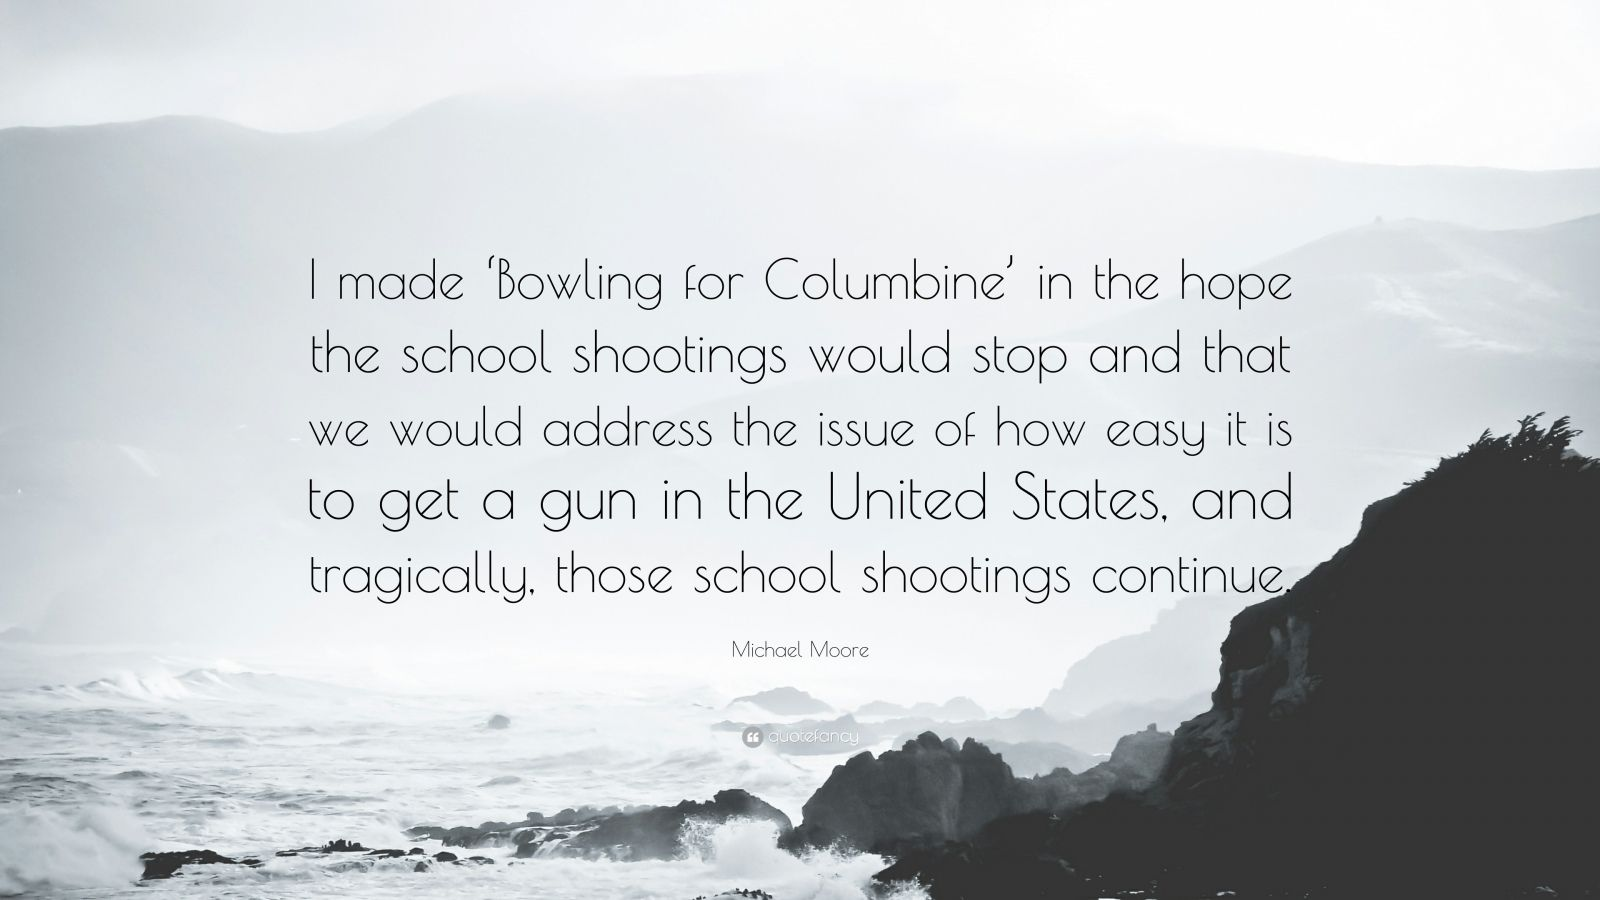 bowling for columbine film by michael moore essay After seeing the movie bowling for columbine, by michael moore, many questions arose on the issues of violence throughout america questions such as, what does the media have to do with crimes.